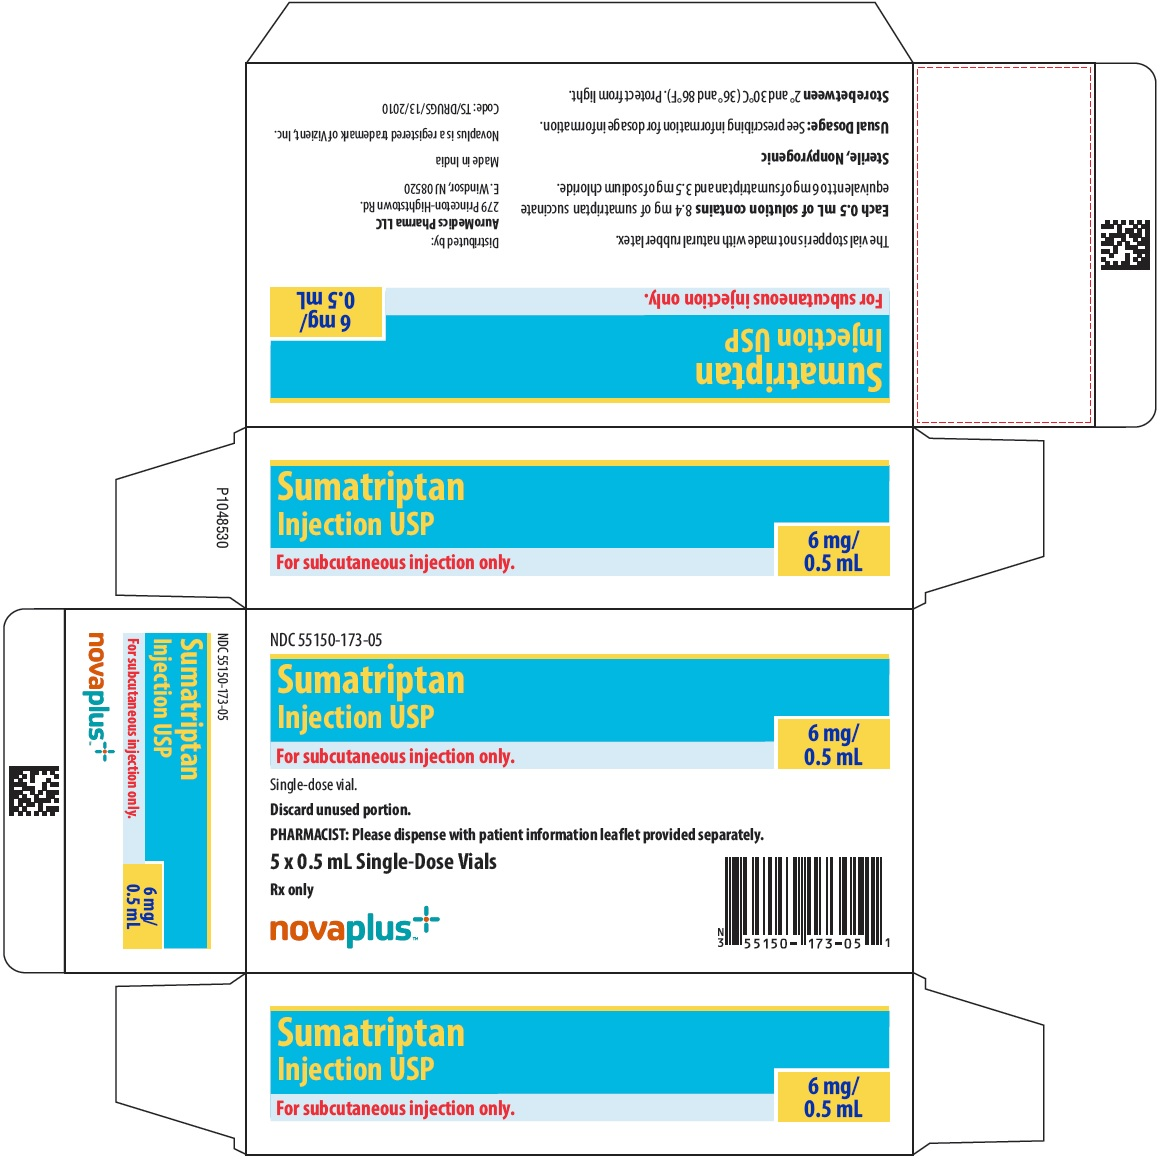 PACKAGE LABEL-PRINCIPAL DISPLAY PANEL - 6 mg/0.5 mL - Container-Carton (5 Vials)